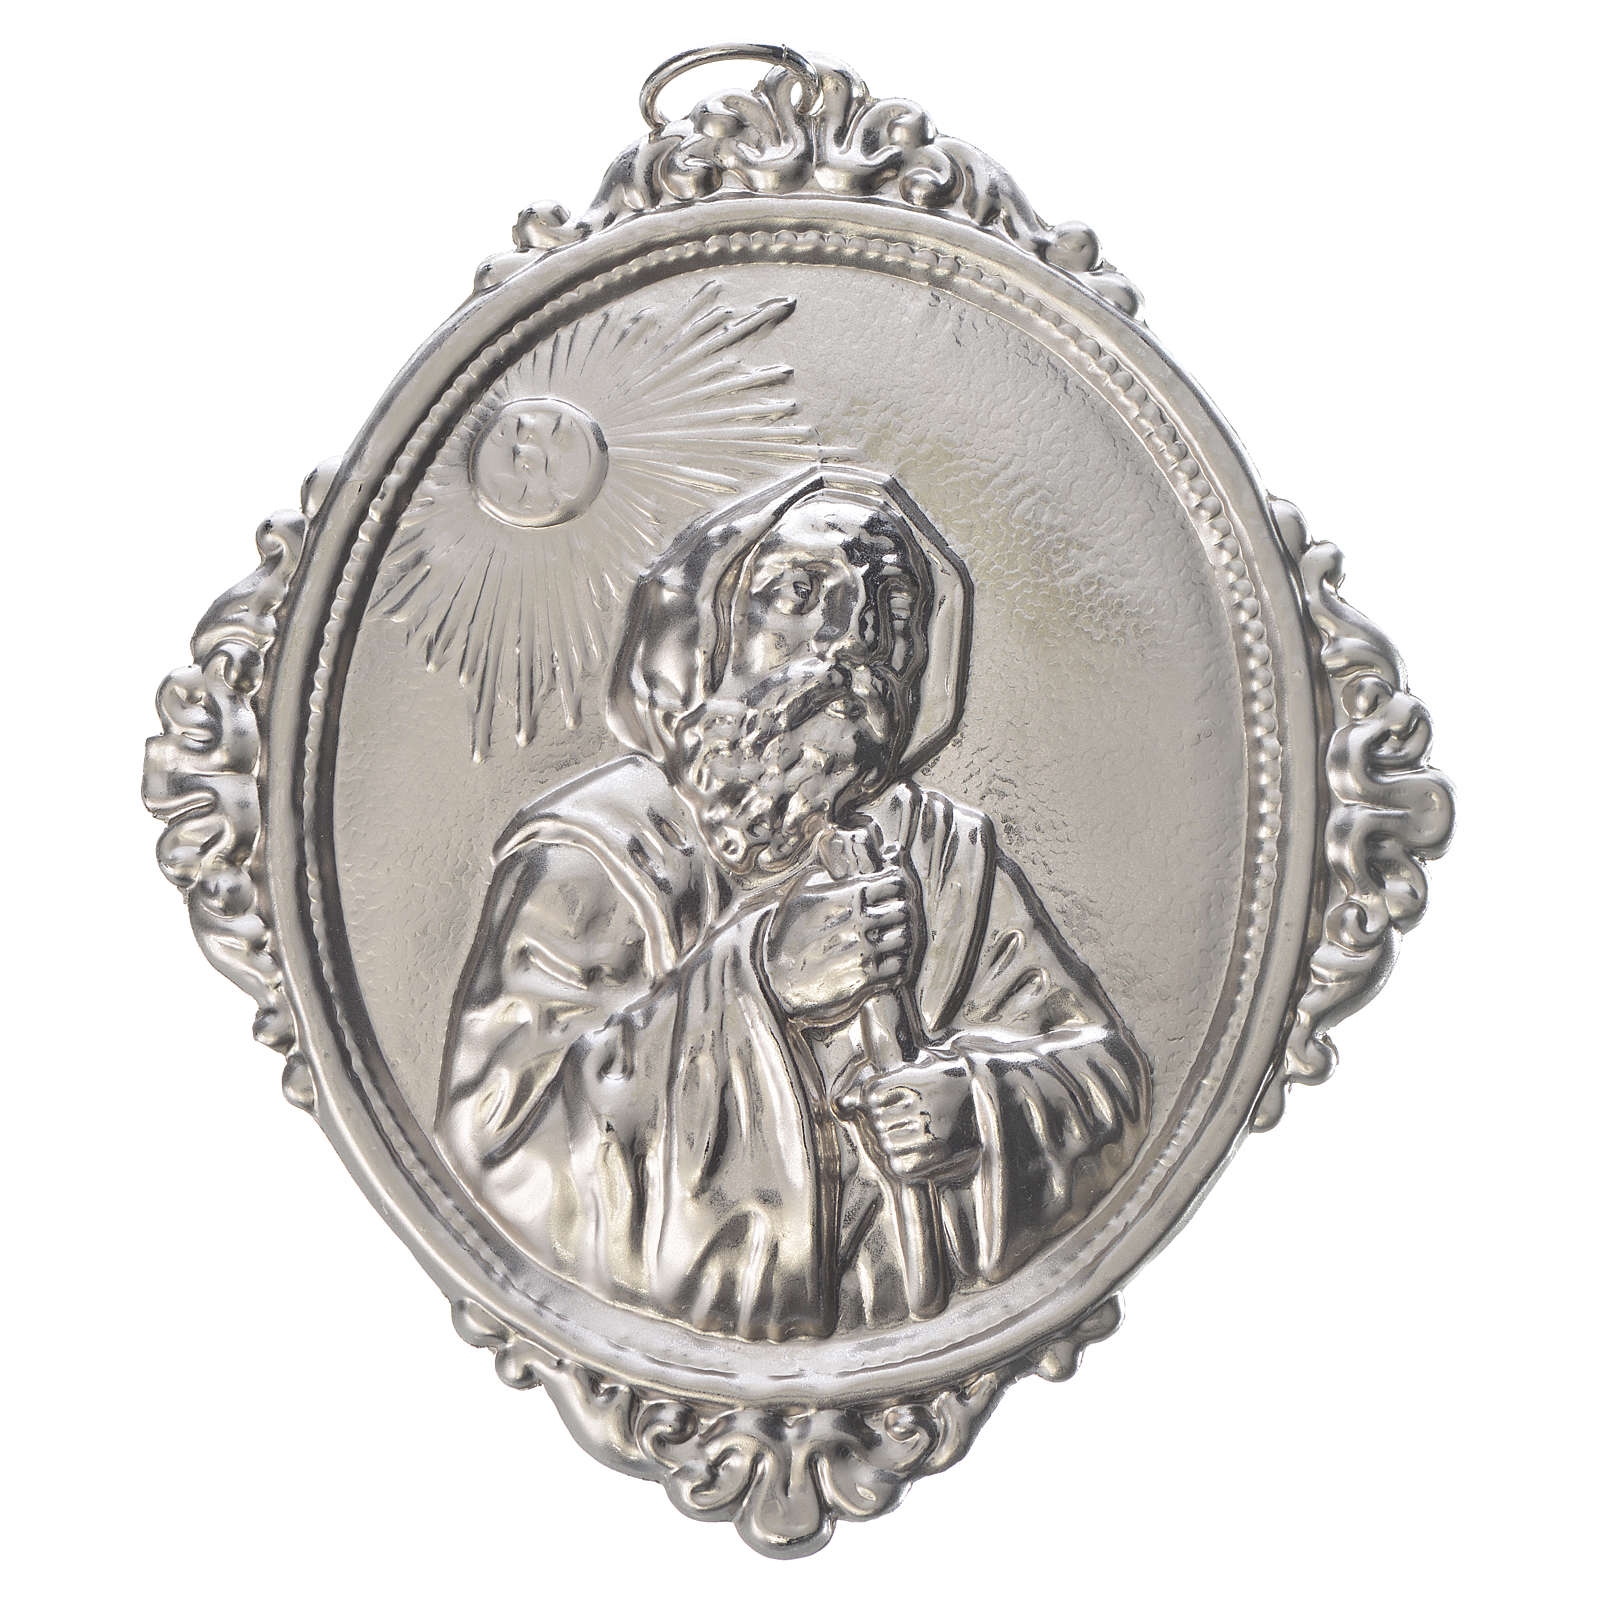 Confraternity Medal in brass, Saint Francis of Paola 3